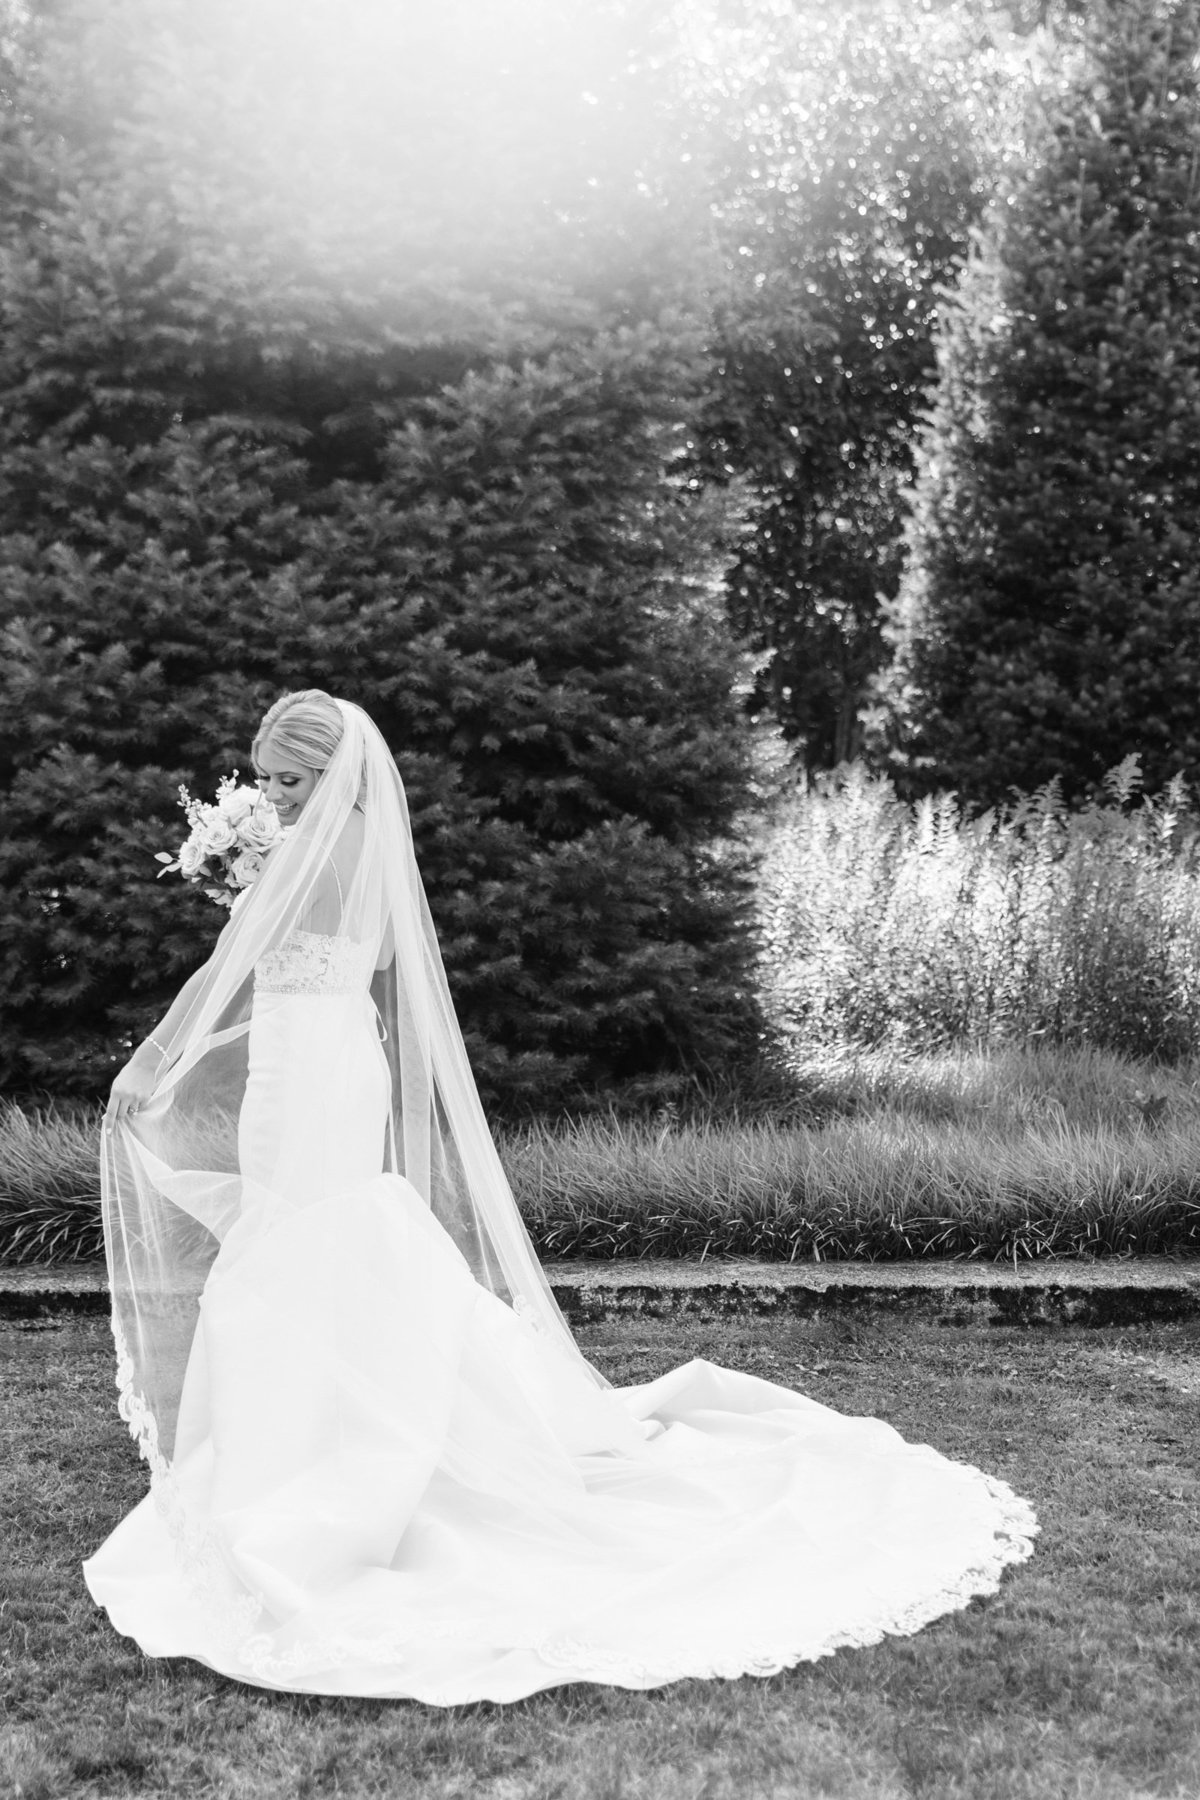 rachael_schirano_photography_weddings-carly.mick-gallery-17